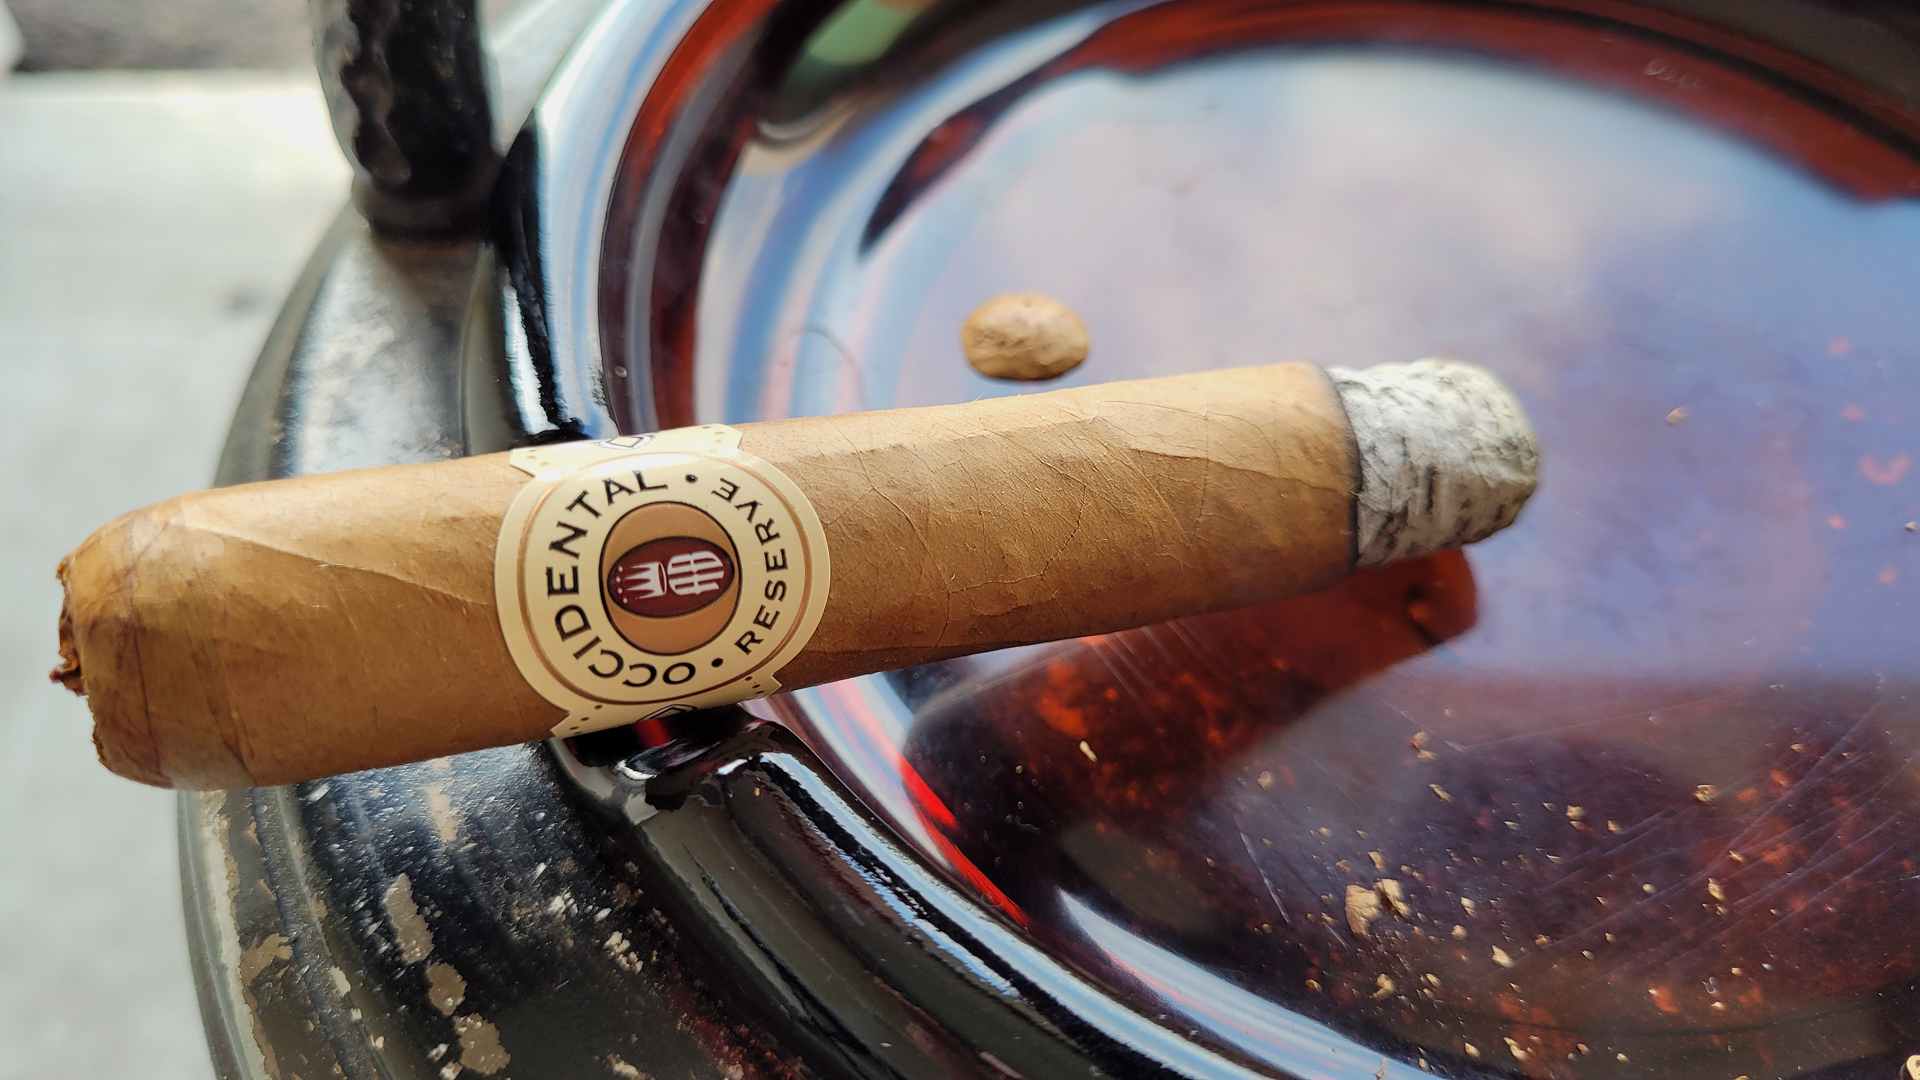 Alec Bradley Occidental Reserve Connecticut Robusto cigar review by Gary Korb